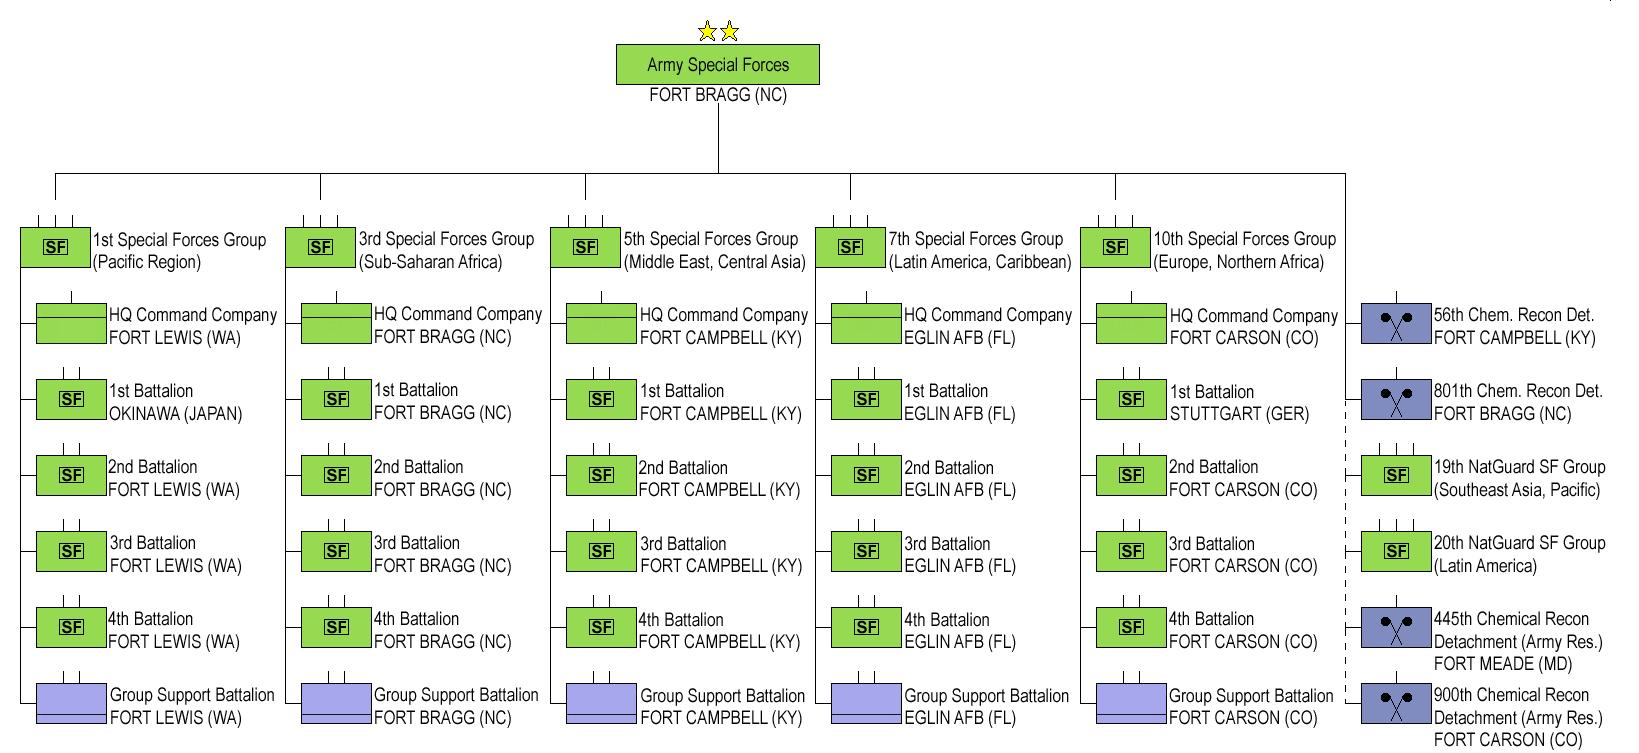 U.S. Army Special Forces Organizational Chart